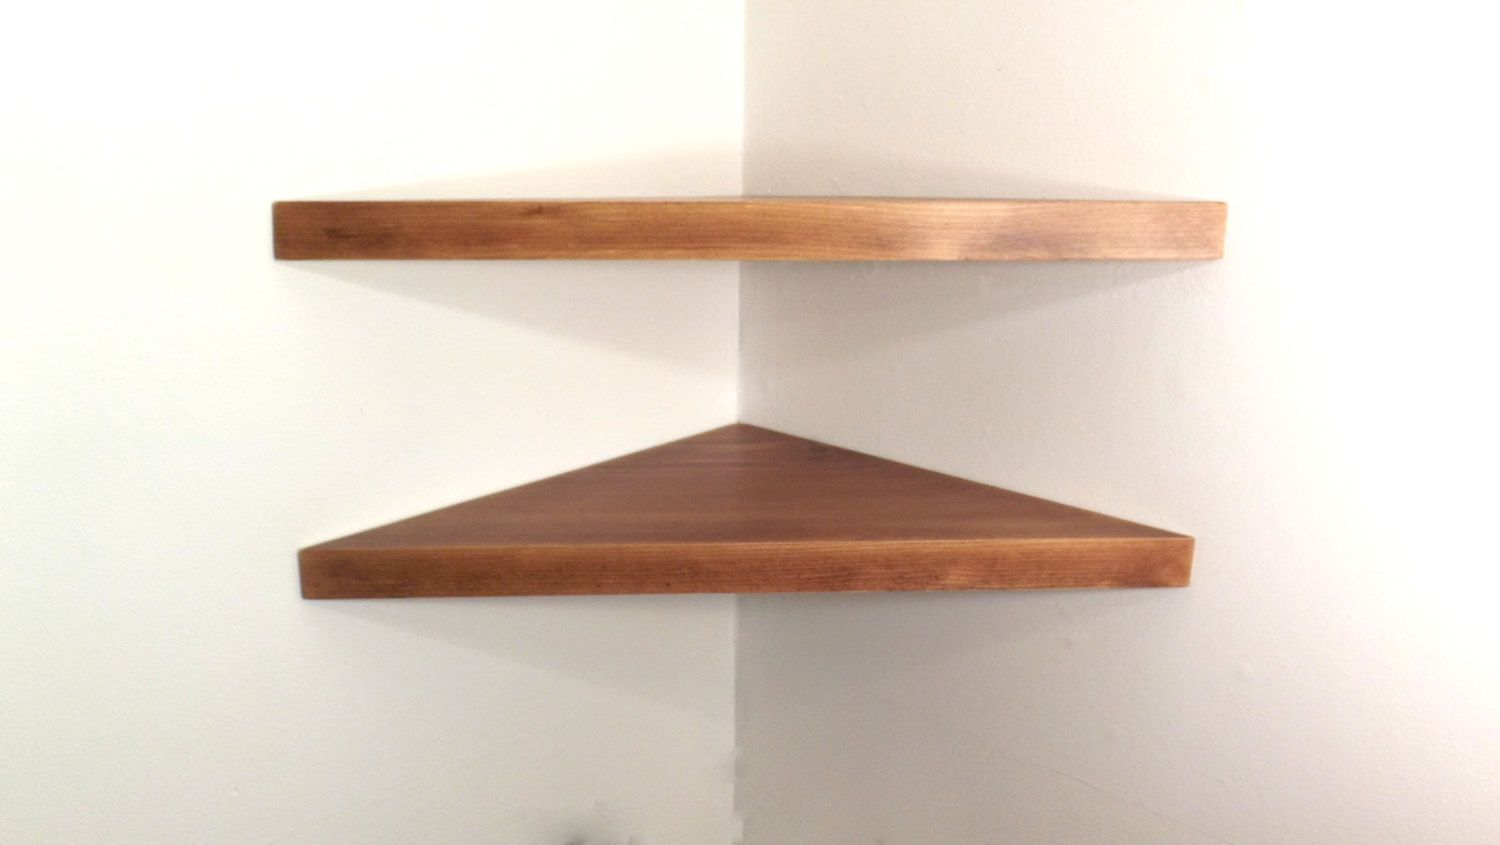 Set Of 2 22 Inch Floating Corner Shelves With Red Mahogany Stain Handmade In The Usa By Bawoodworking Red Mahogany Stain Floating Corner Shelves Corner Shelves